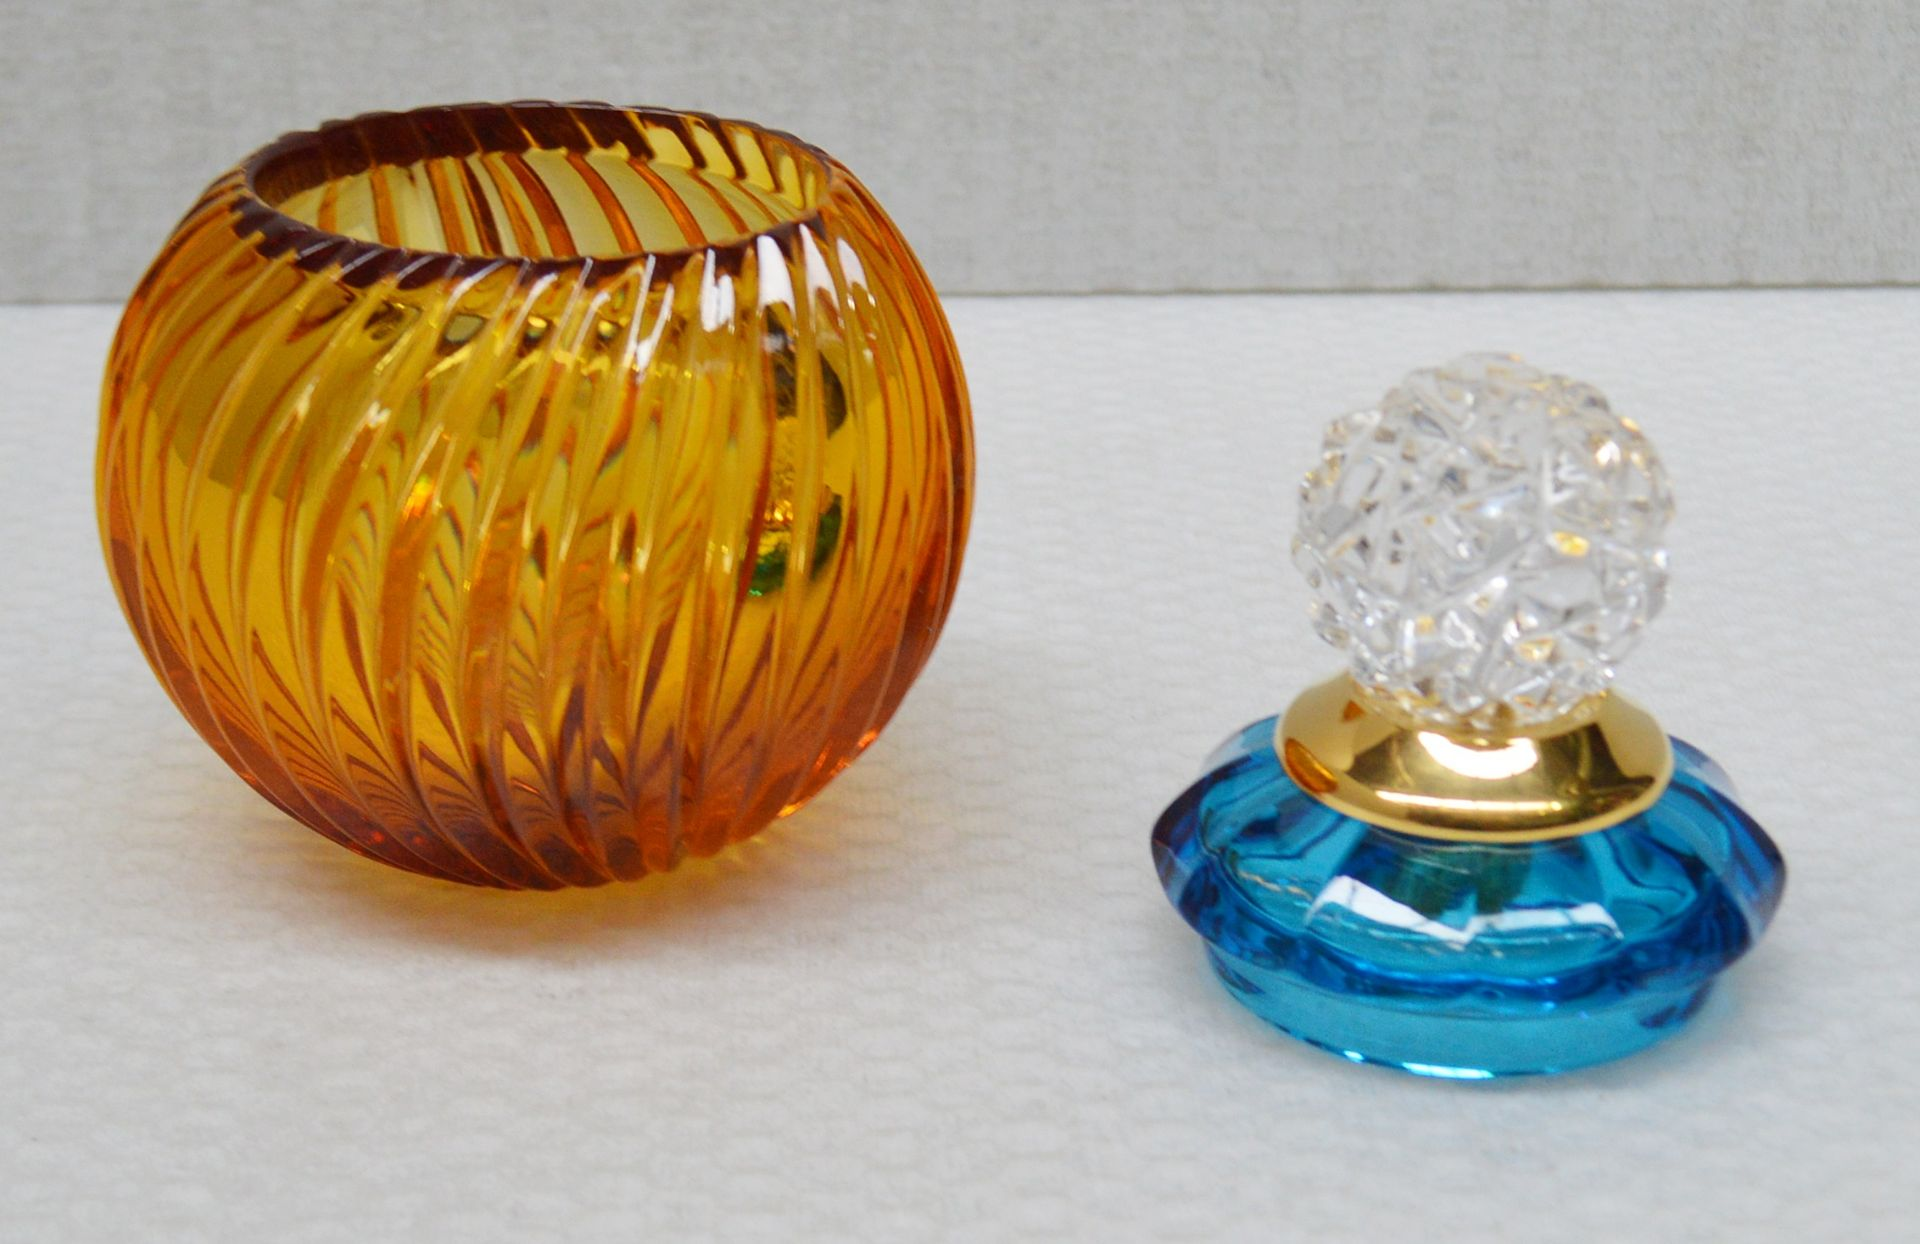 1 x BALDI 'Home Jewels' Italian Hand-crafted Artisan Small Coccinella Jar In Blue And Orange Crystal - Image 2 of 3